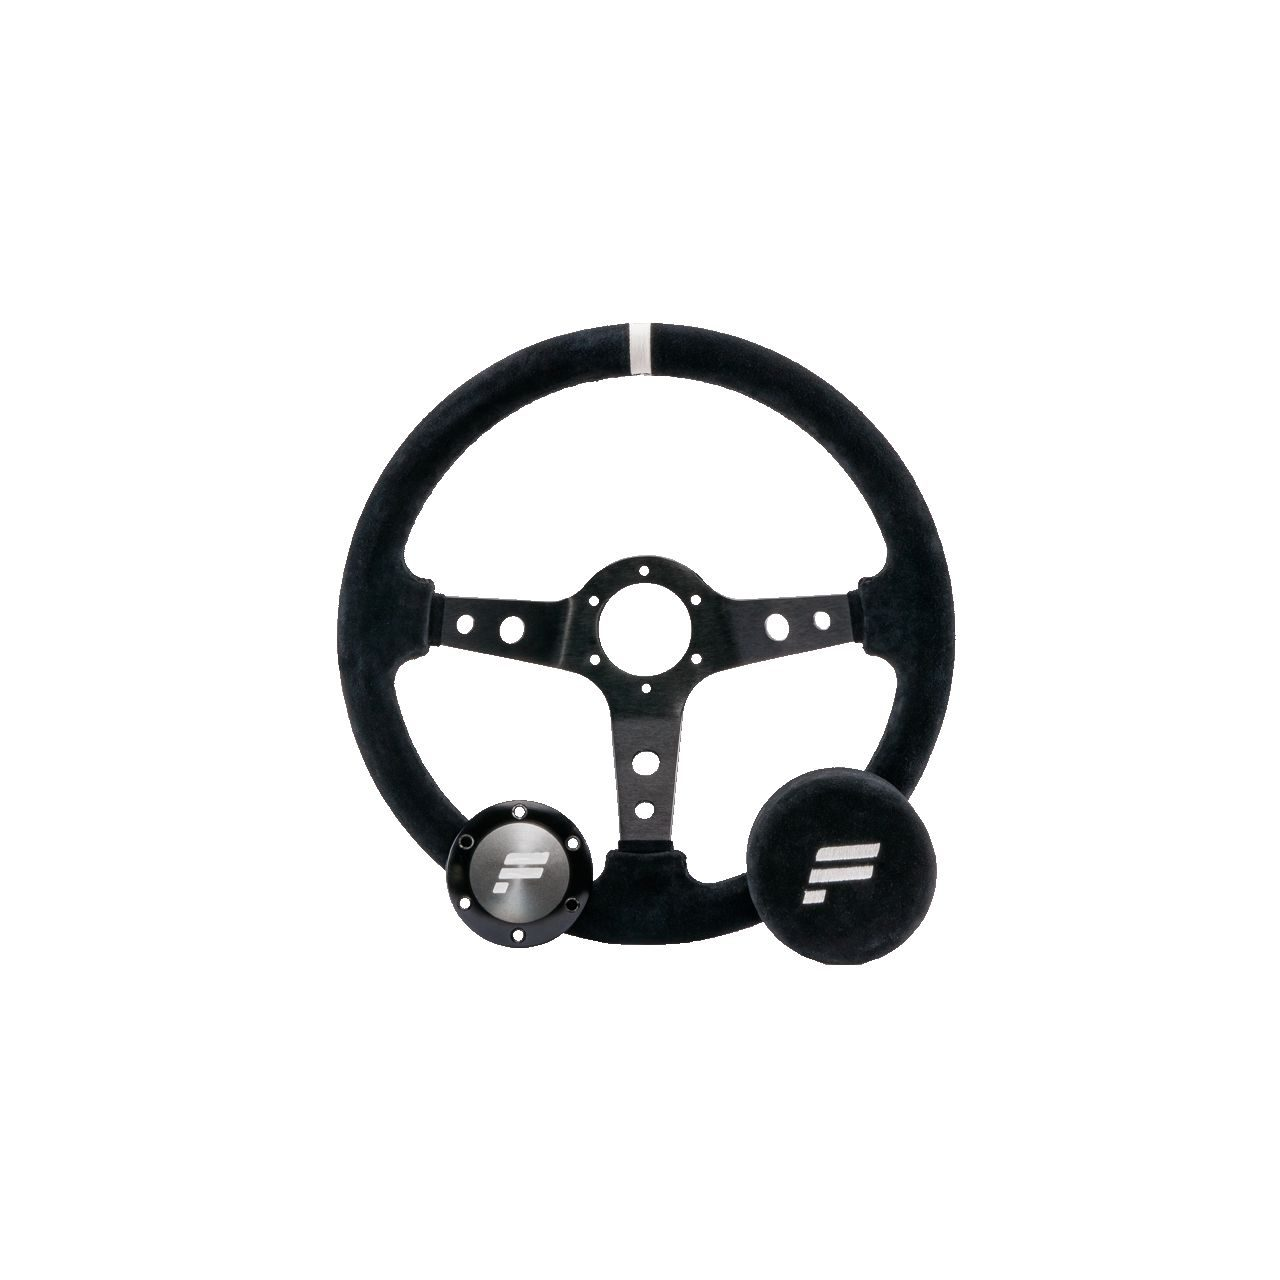 ClubSport steering wheel Oval XBOX ONE